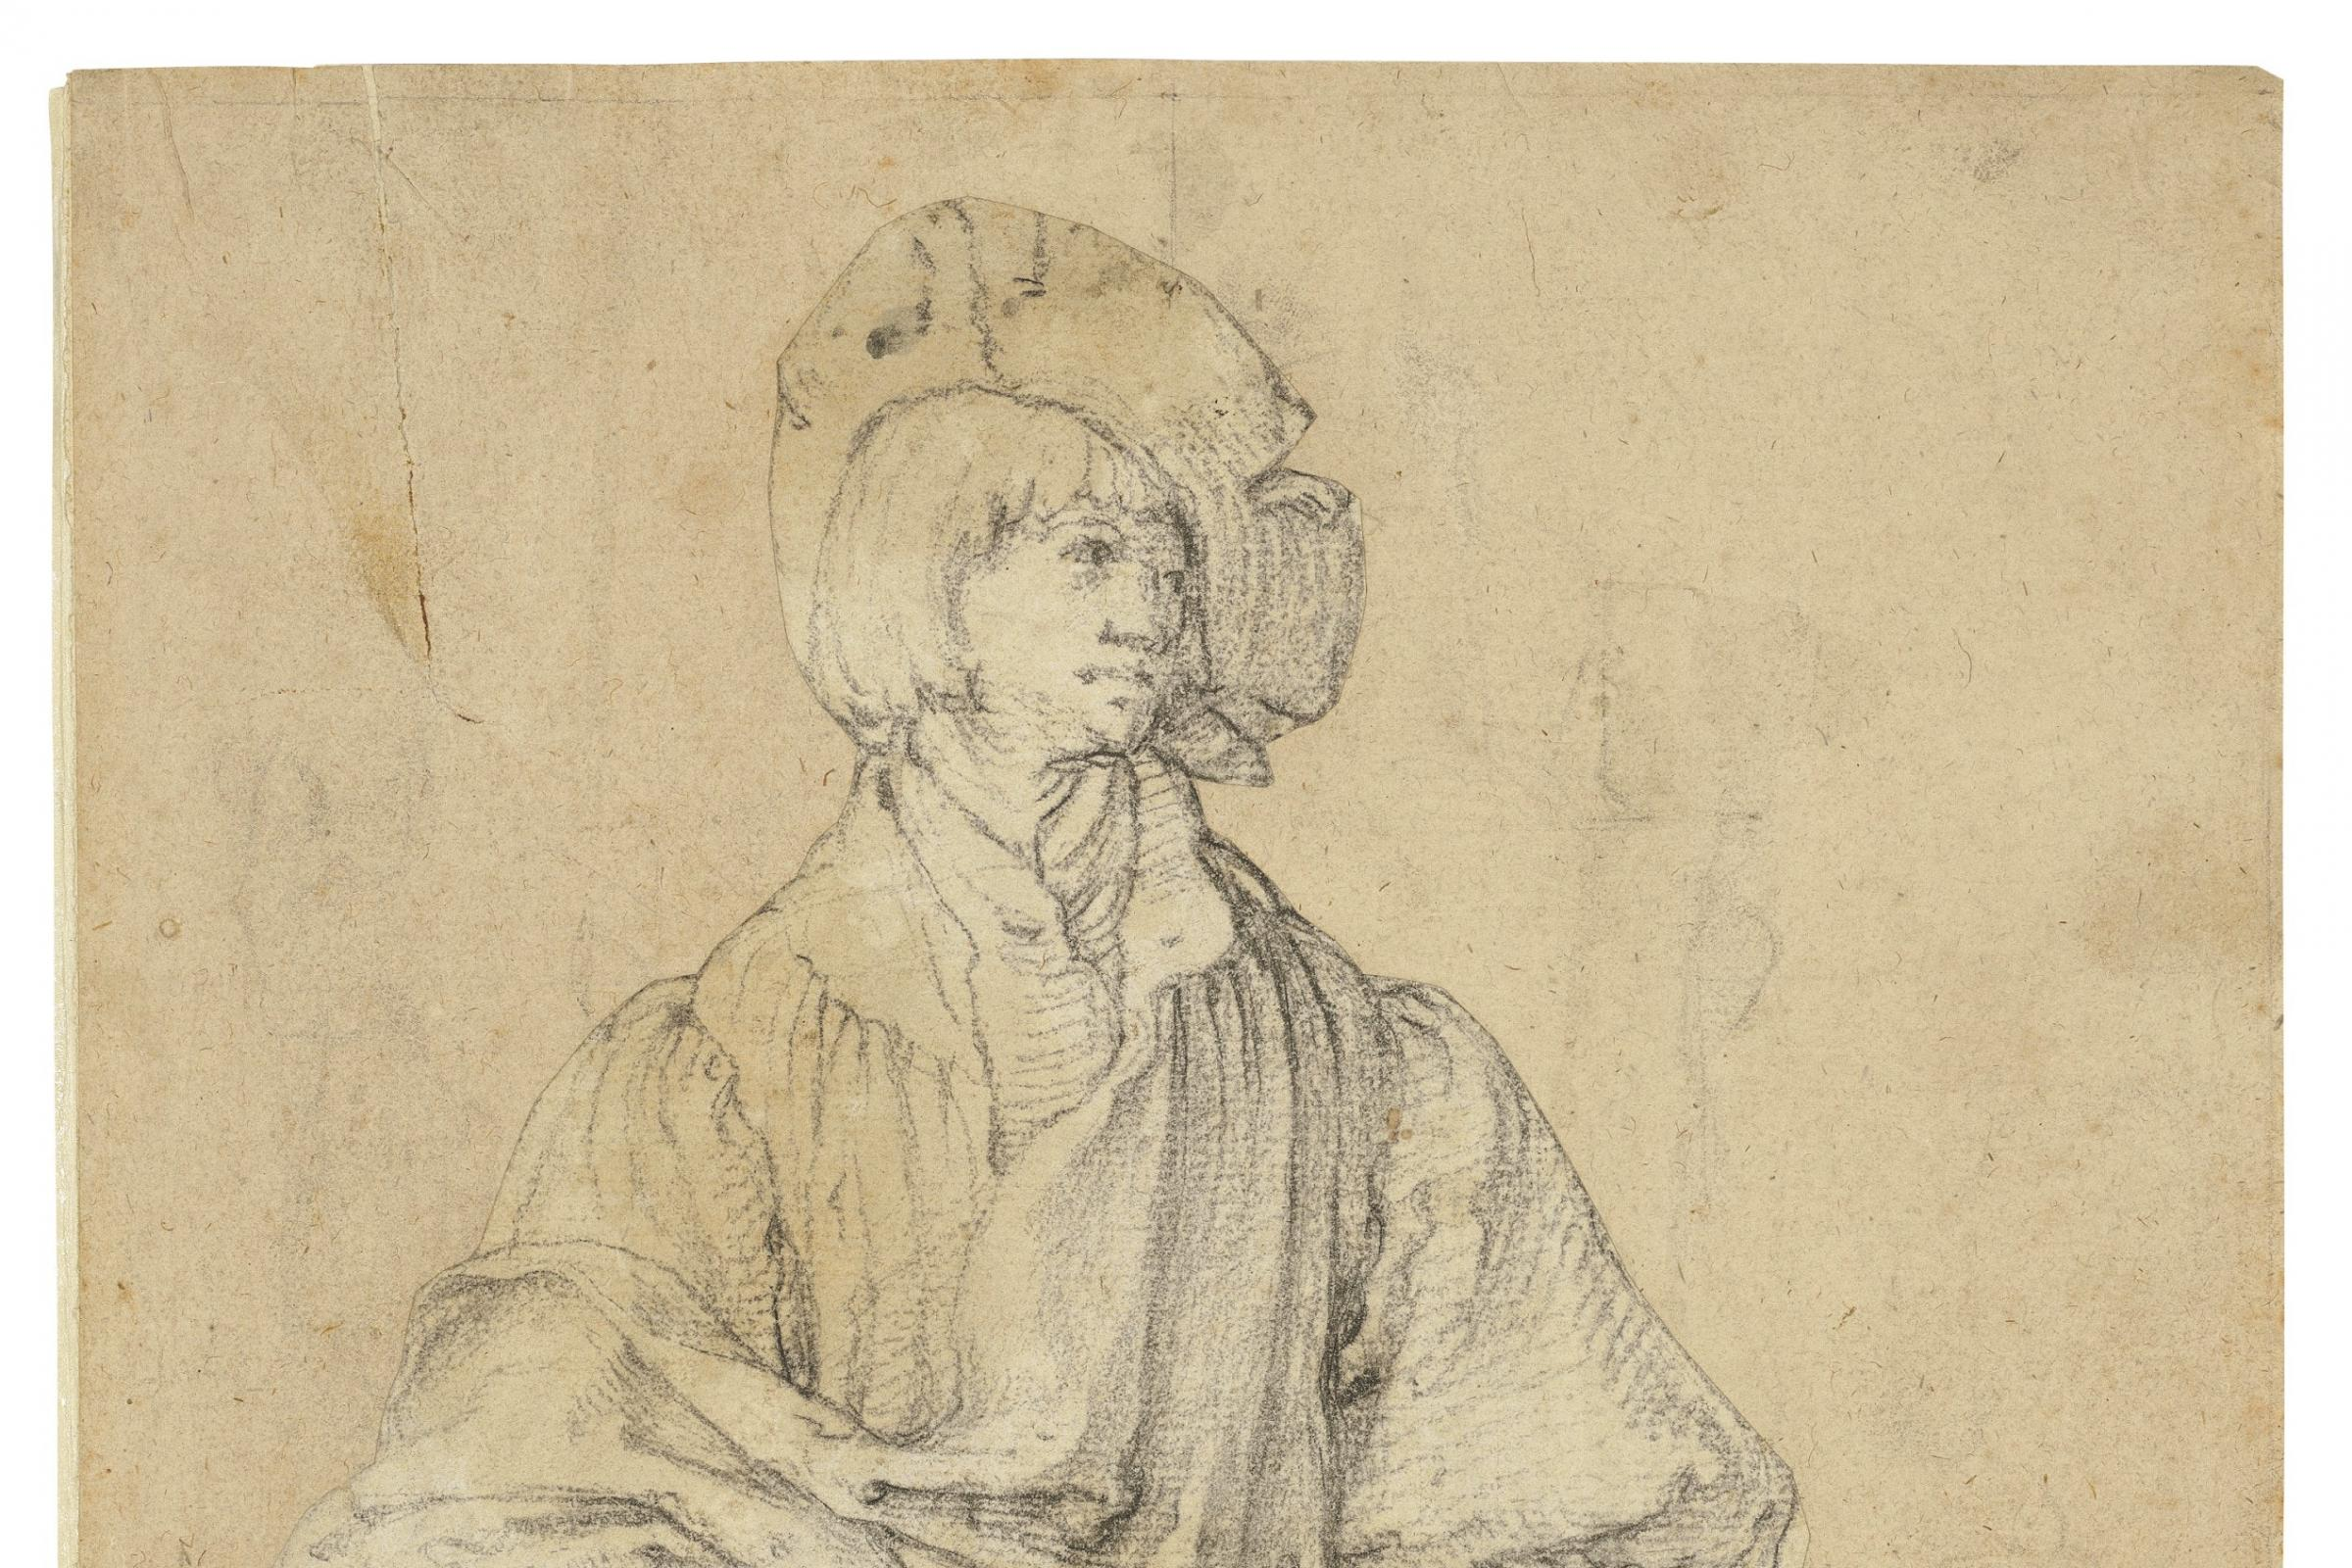 A Young Man Standing, by Dutch artist Lucas van Leyden